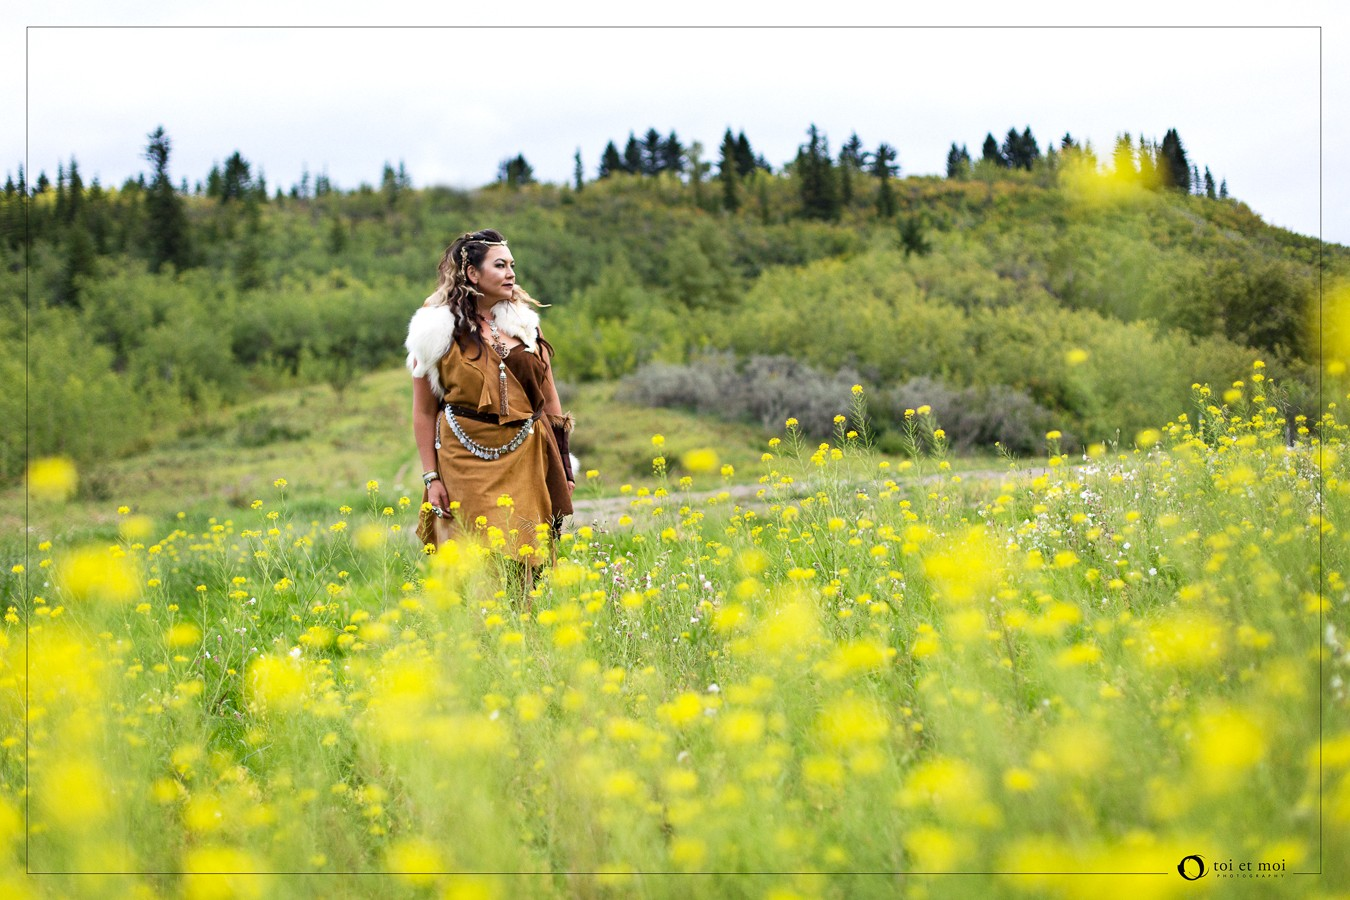 Beautiful portrait of a woman in the filed of yellow flowers